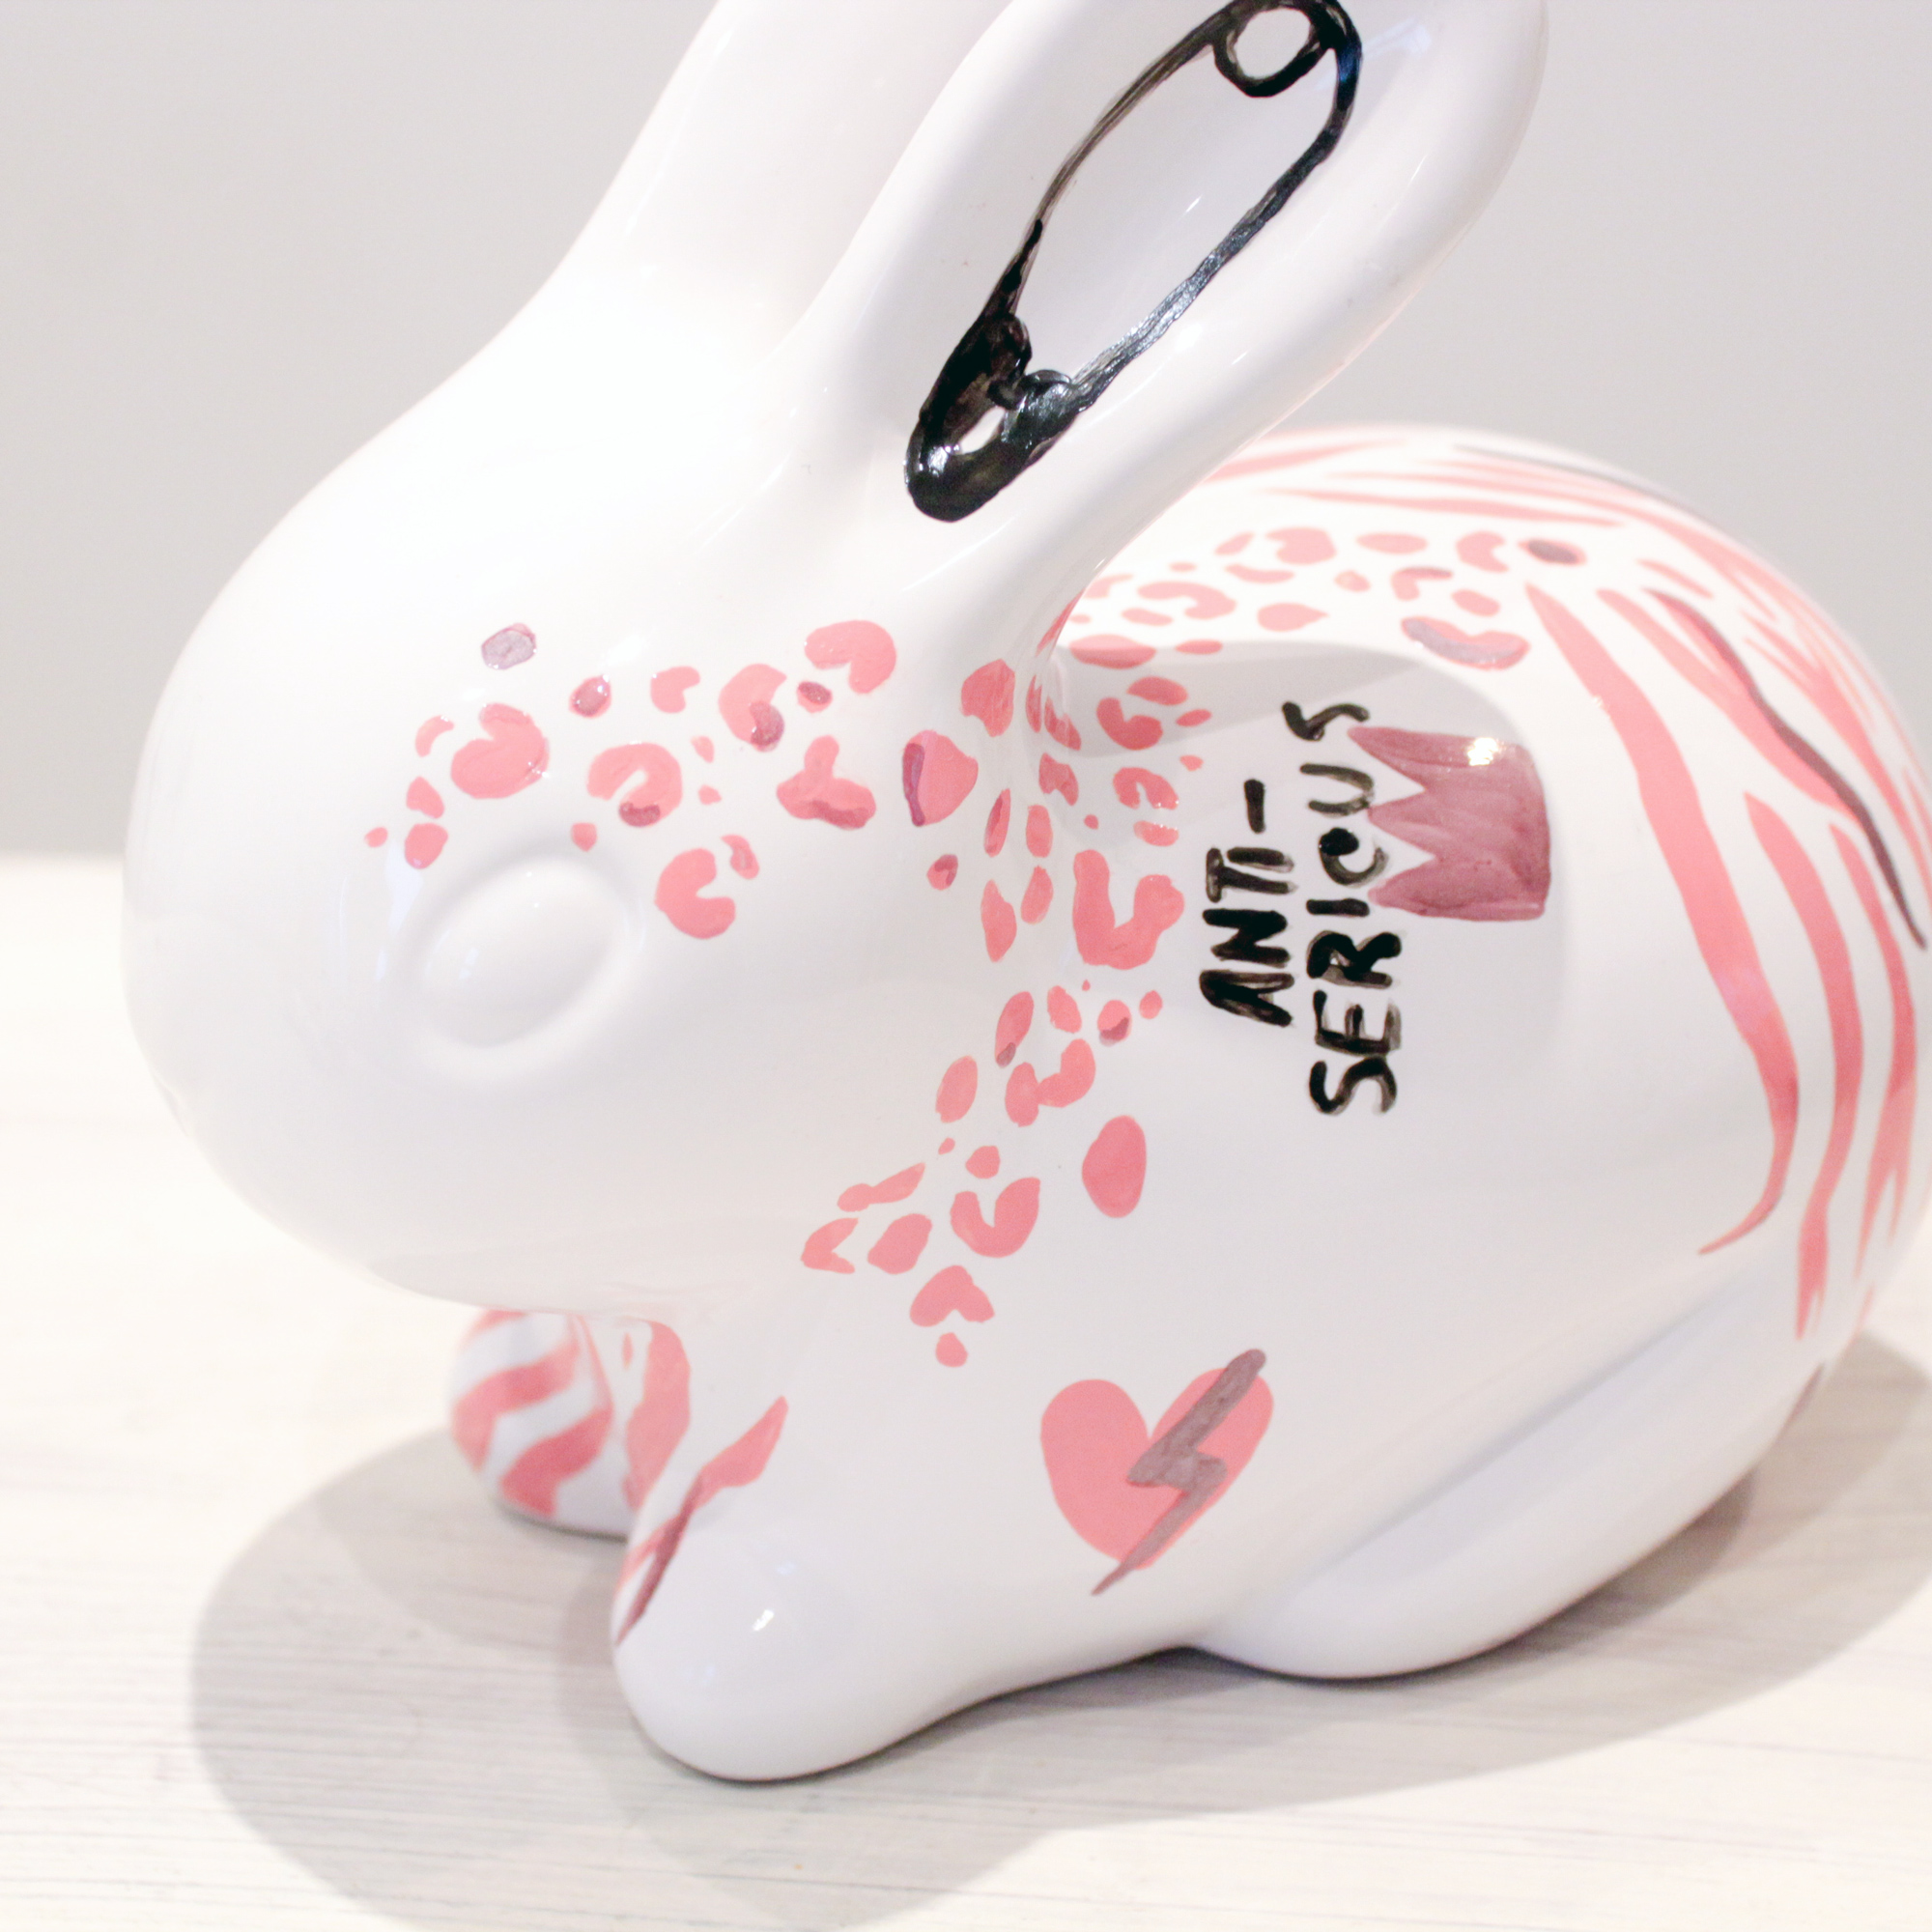 Buttercrumble---York-Bunny-Search---06---Web.jpg